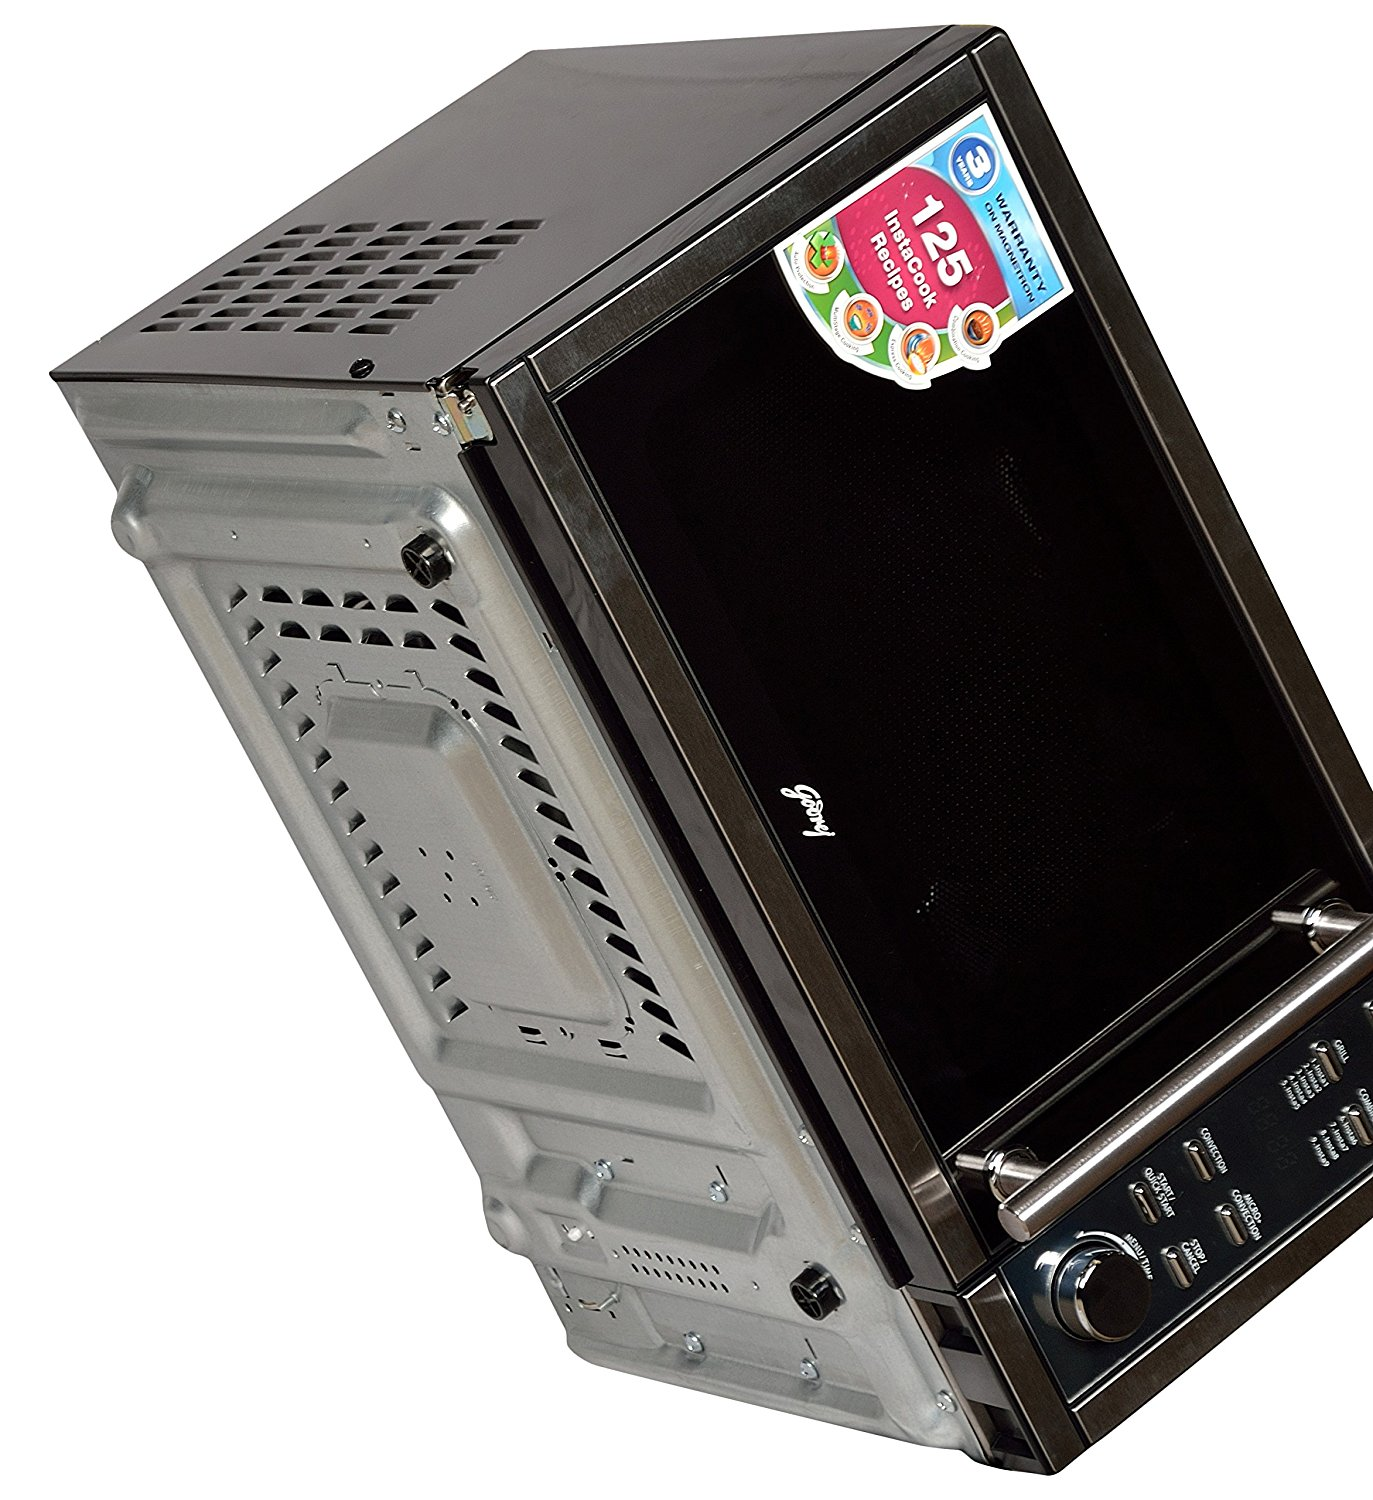 20 L capacity microwave from LG